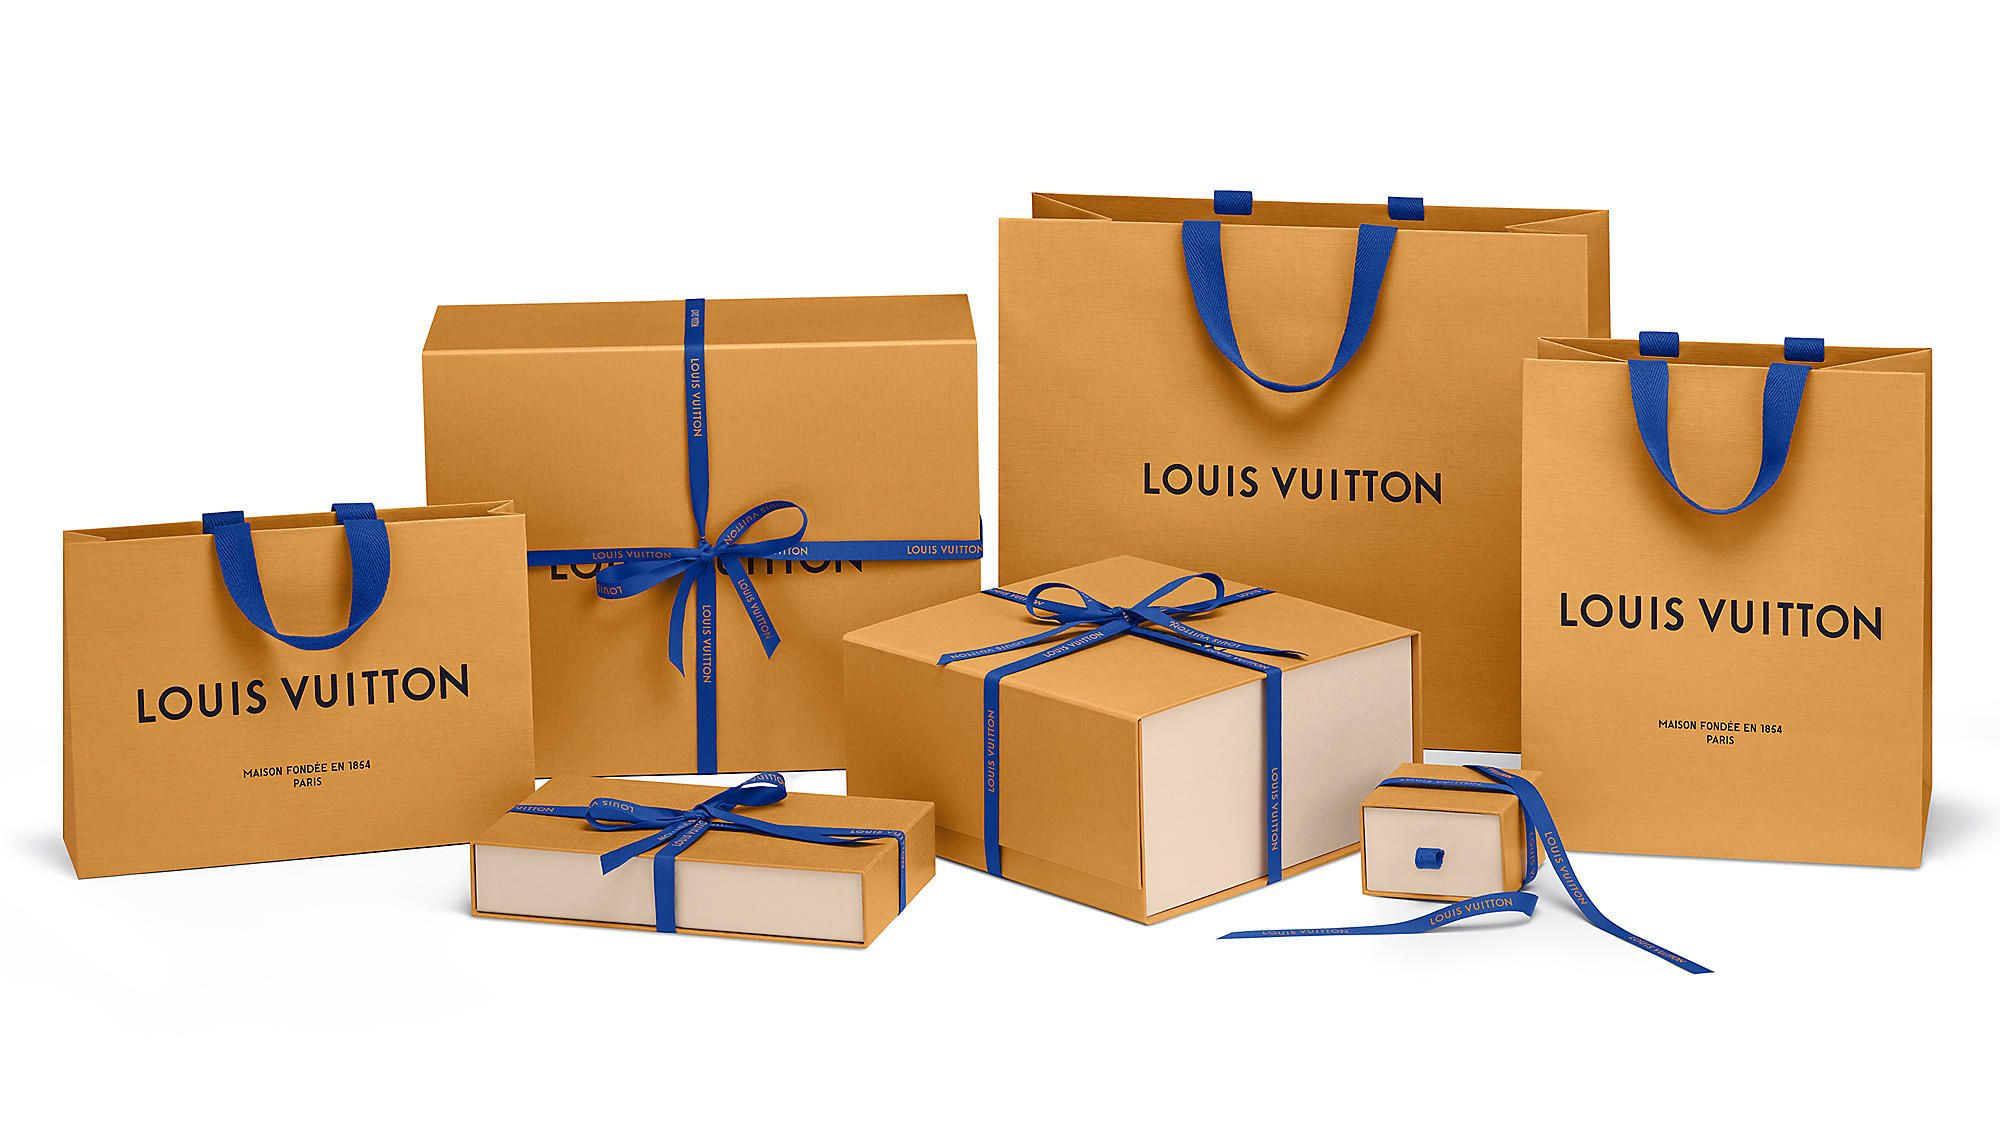 6c94fbf52 Louis Vuitton Launches New Online Delivery To Ireland